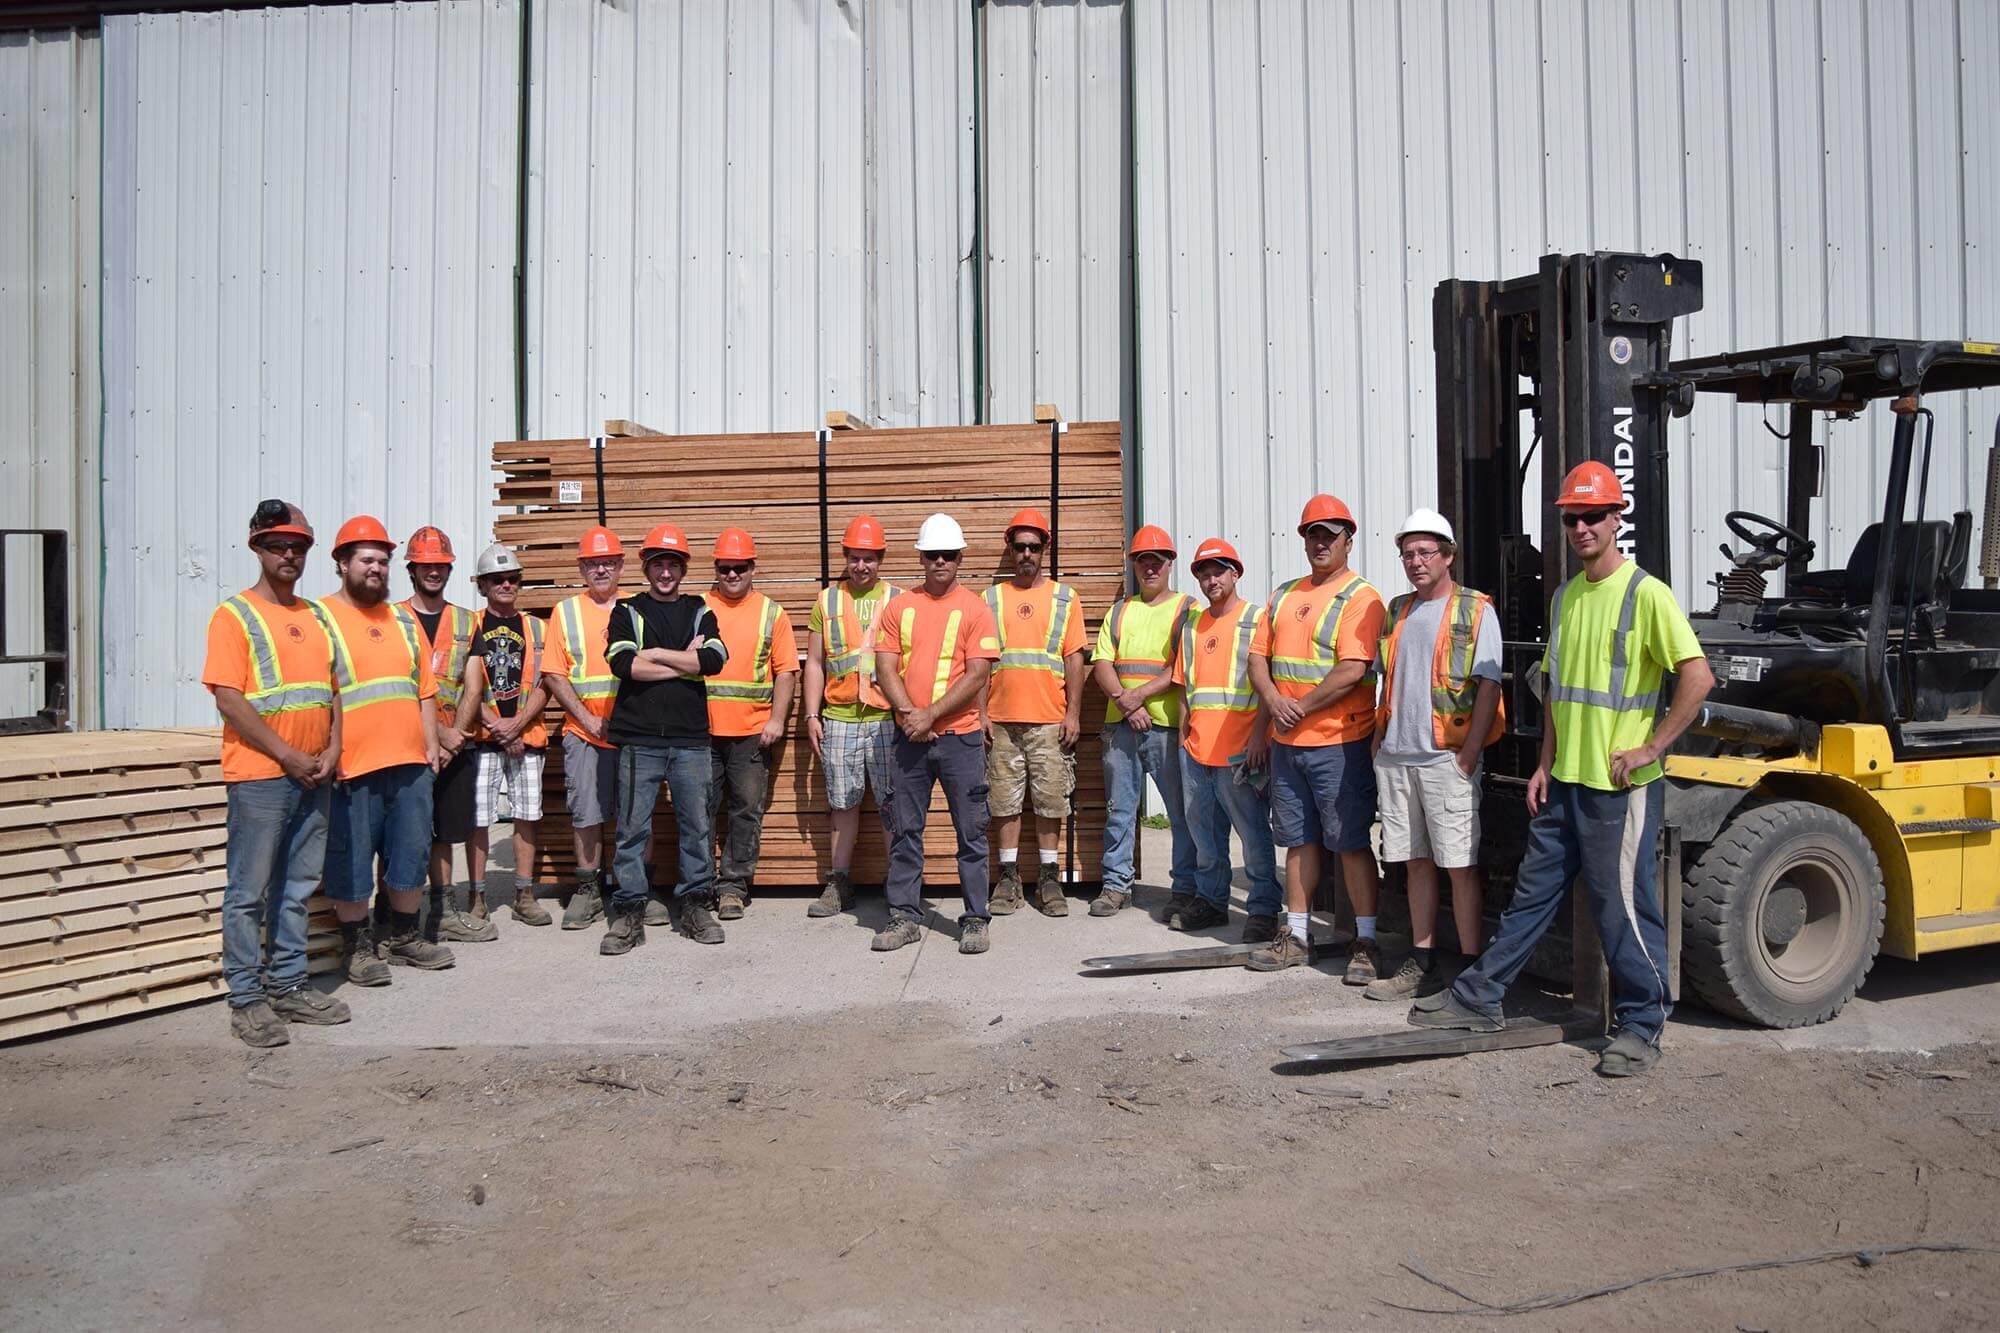 the townsend team posing outside wearhouse in front of large palettes of wood.